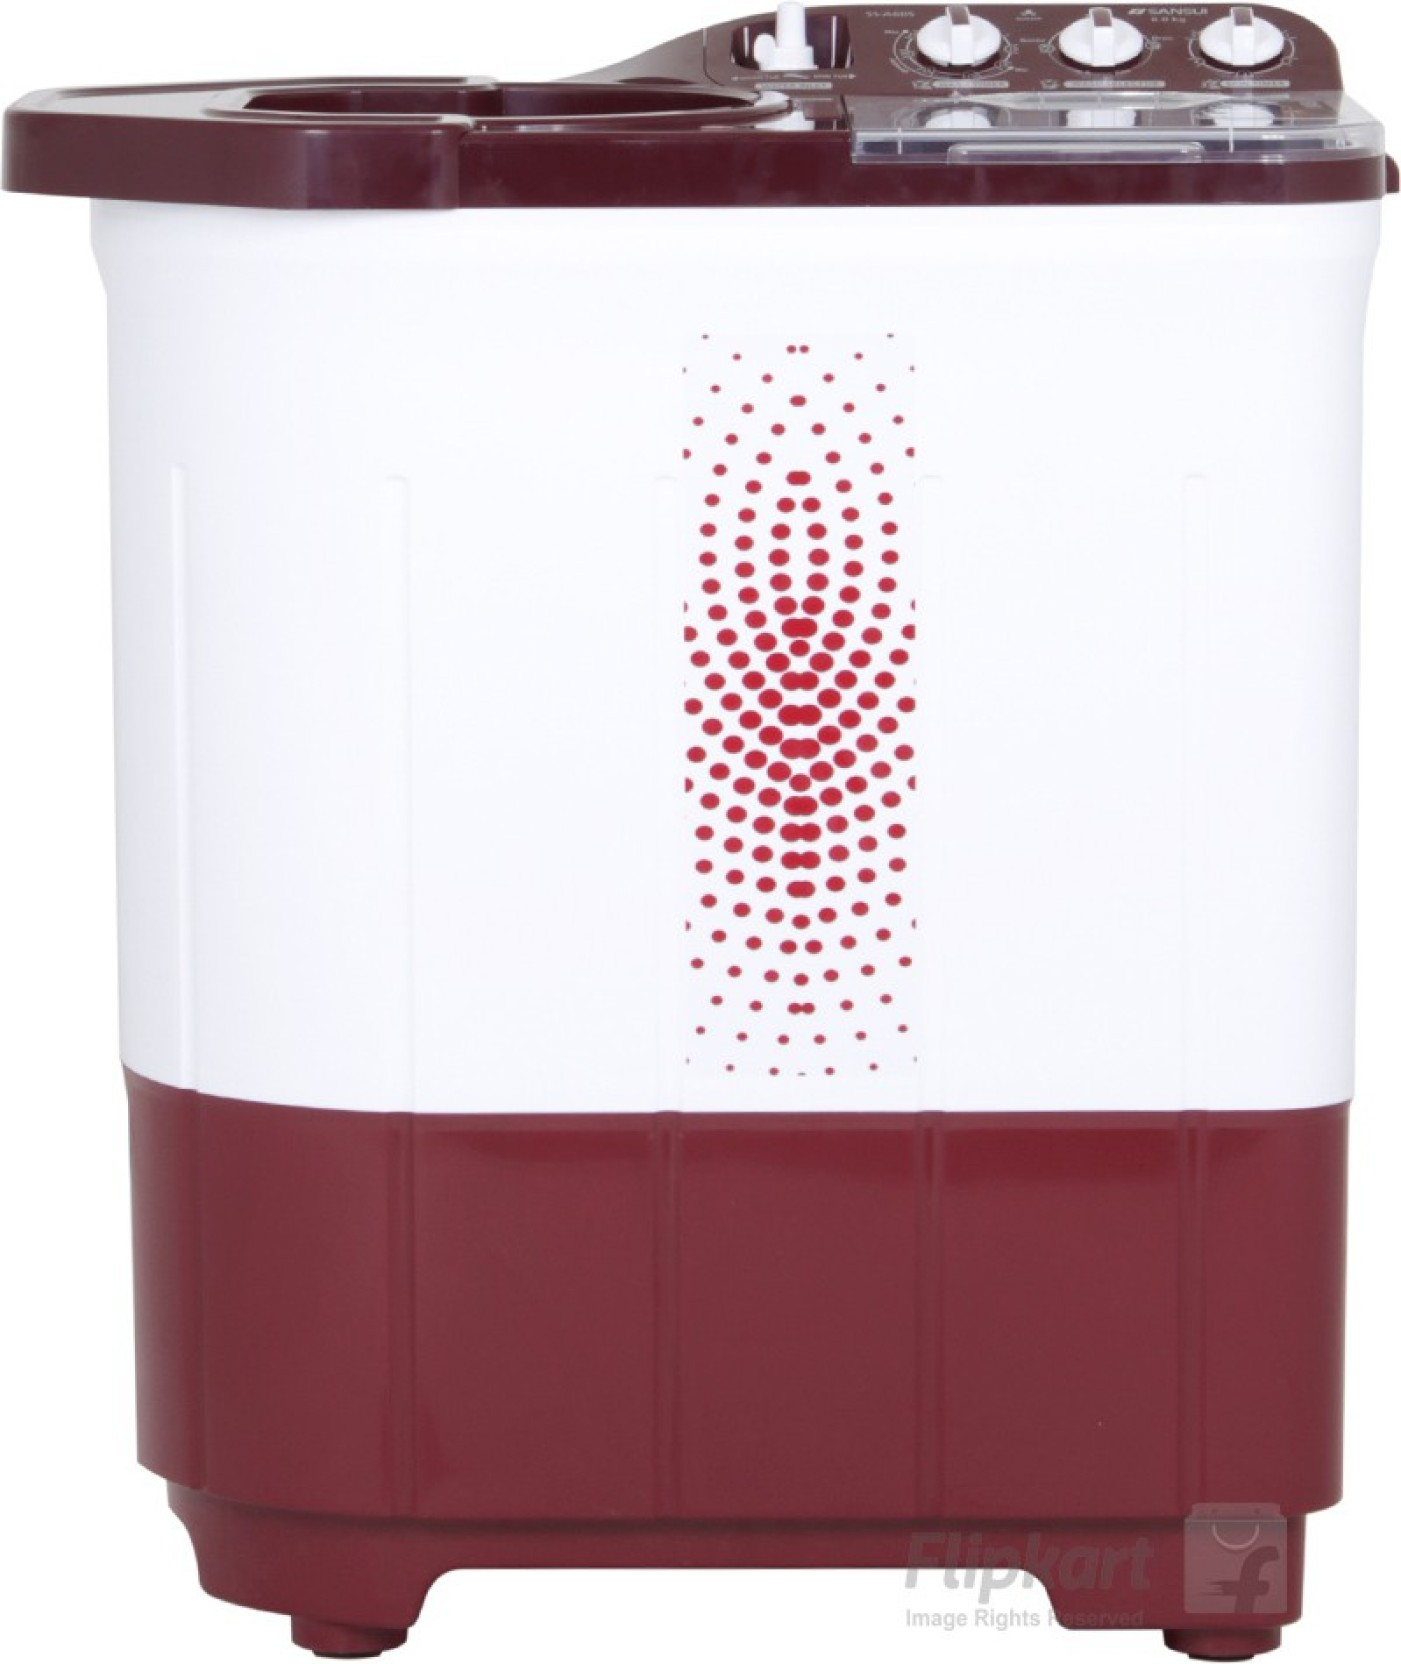 Sansui 6 kg Semi Automatic Top Load Washing Machine Maroon ...